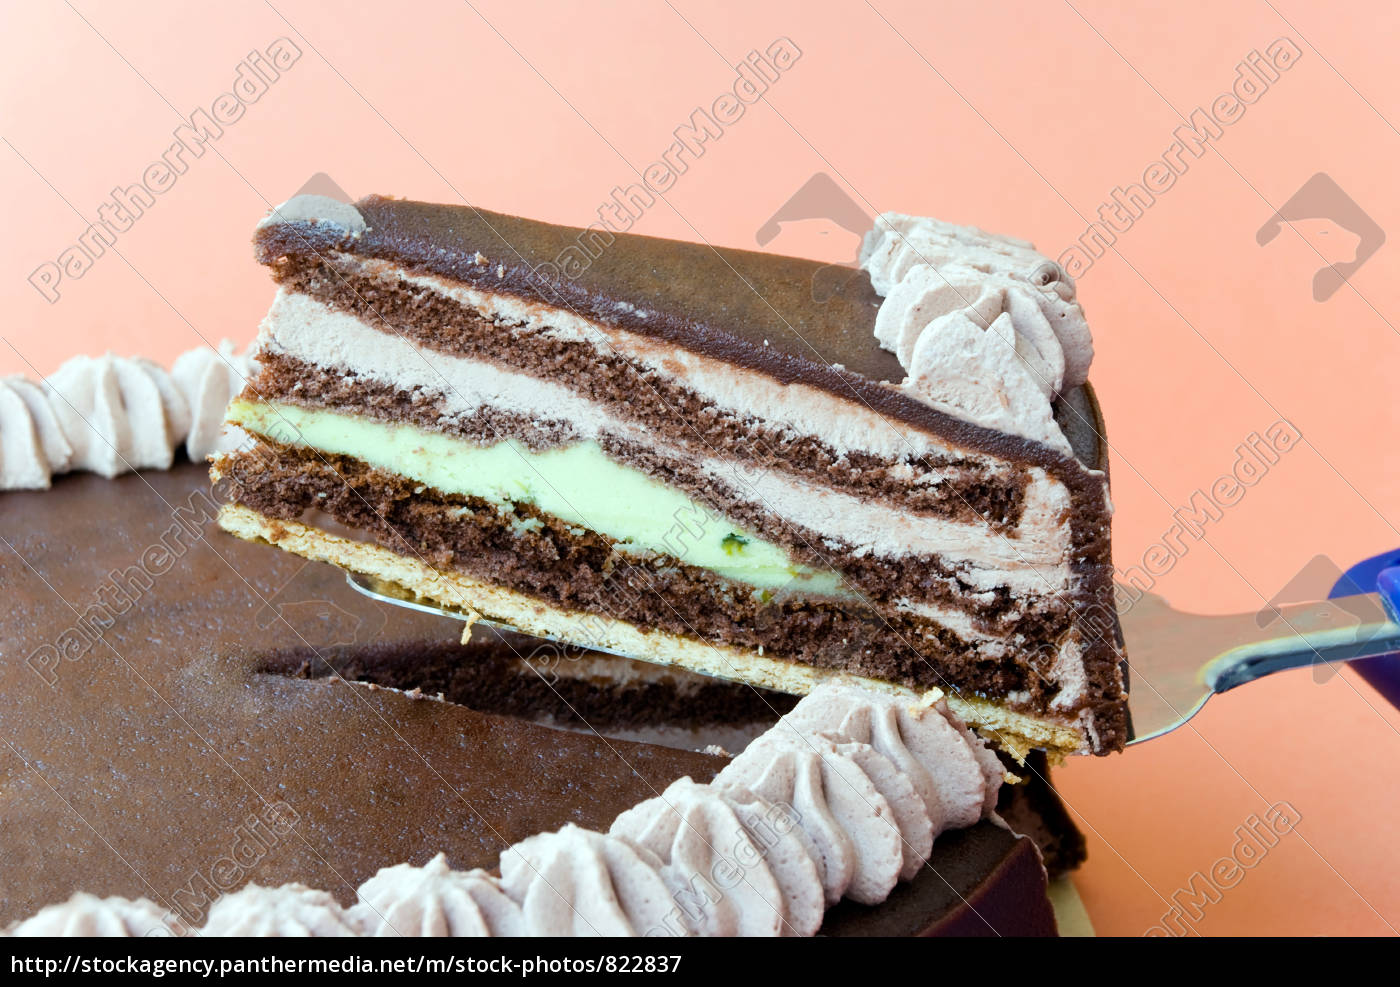 chocolate, marzipan, cream, cake - 822837